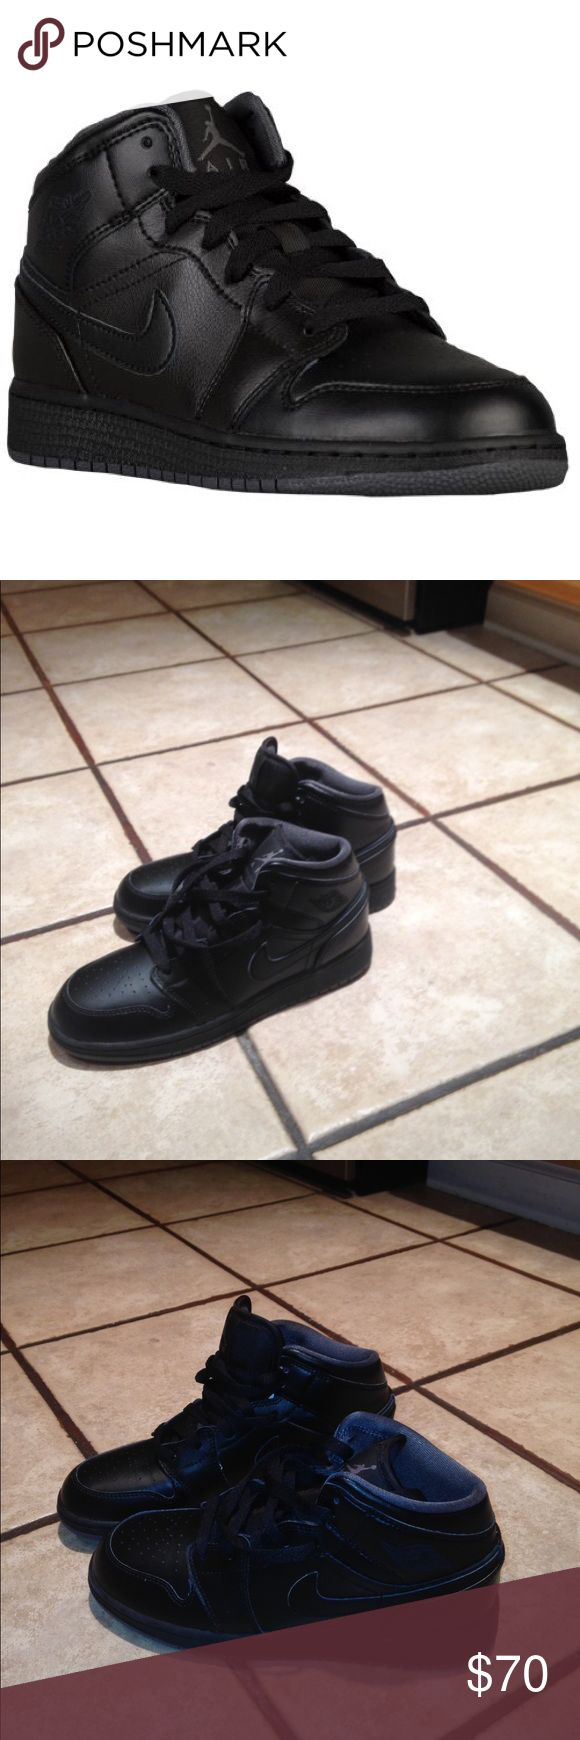 Nike Jordan AJ1 Mid New and not worn. NO TRADES. No extra pics. Nike Shoes Sneakers